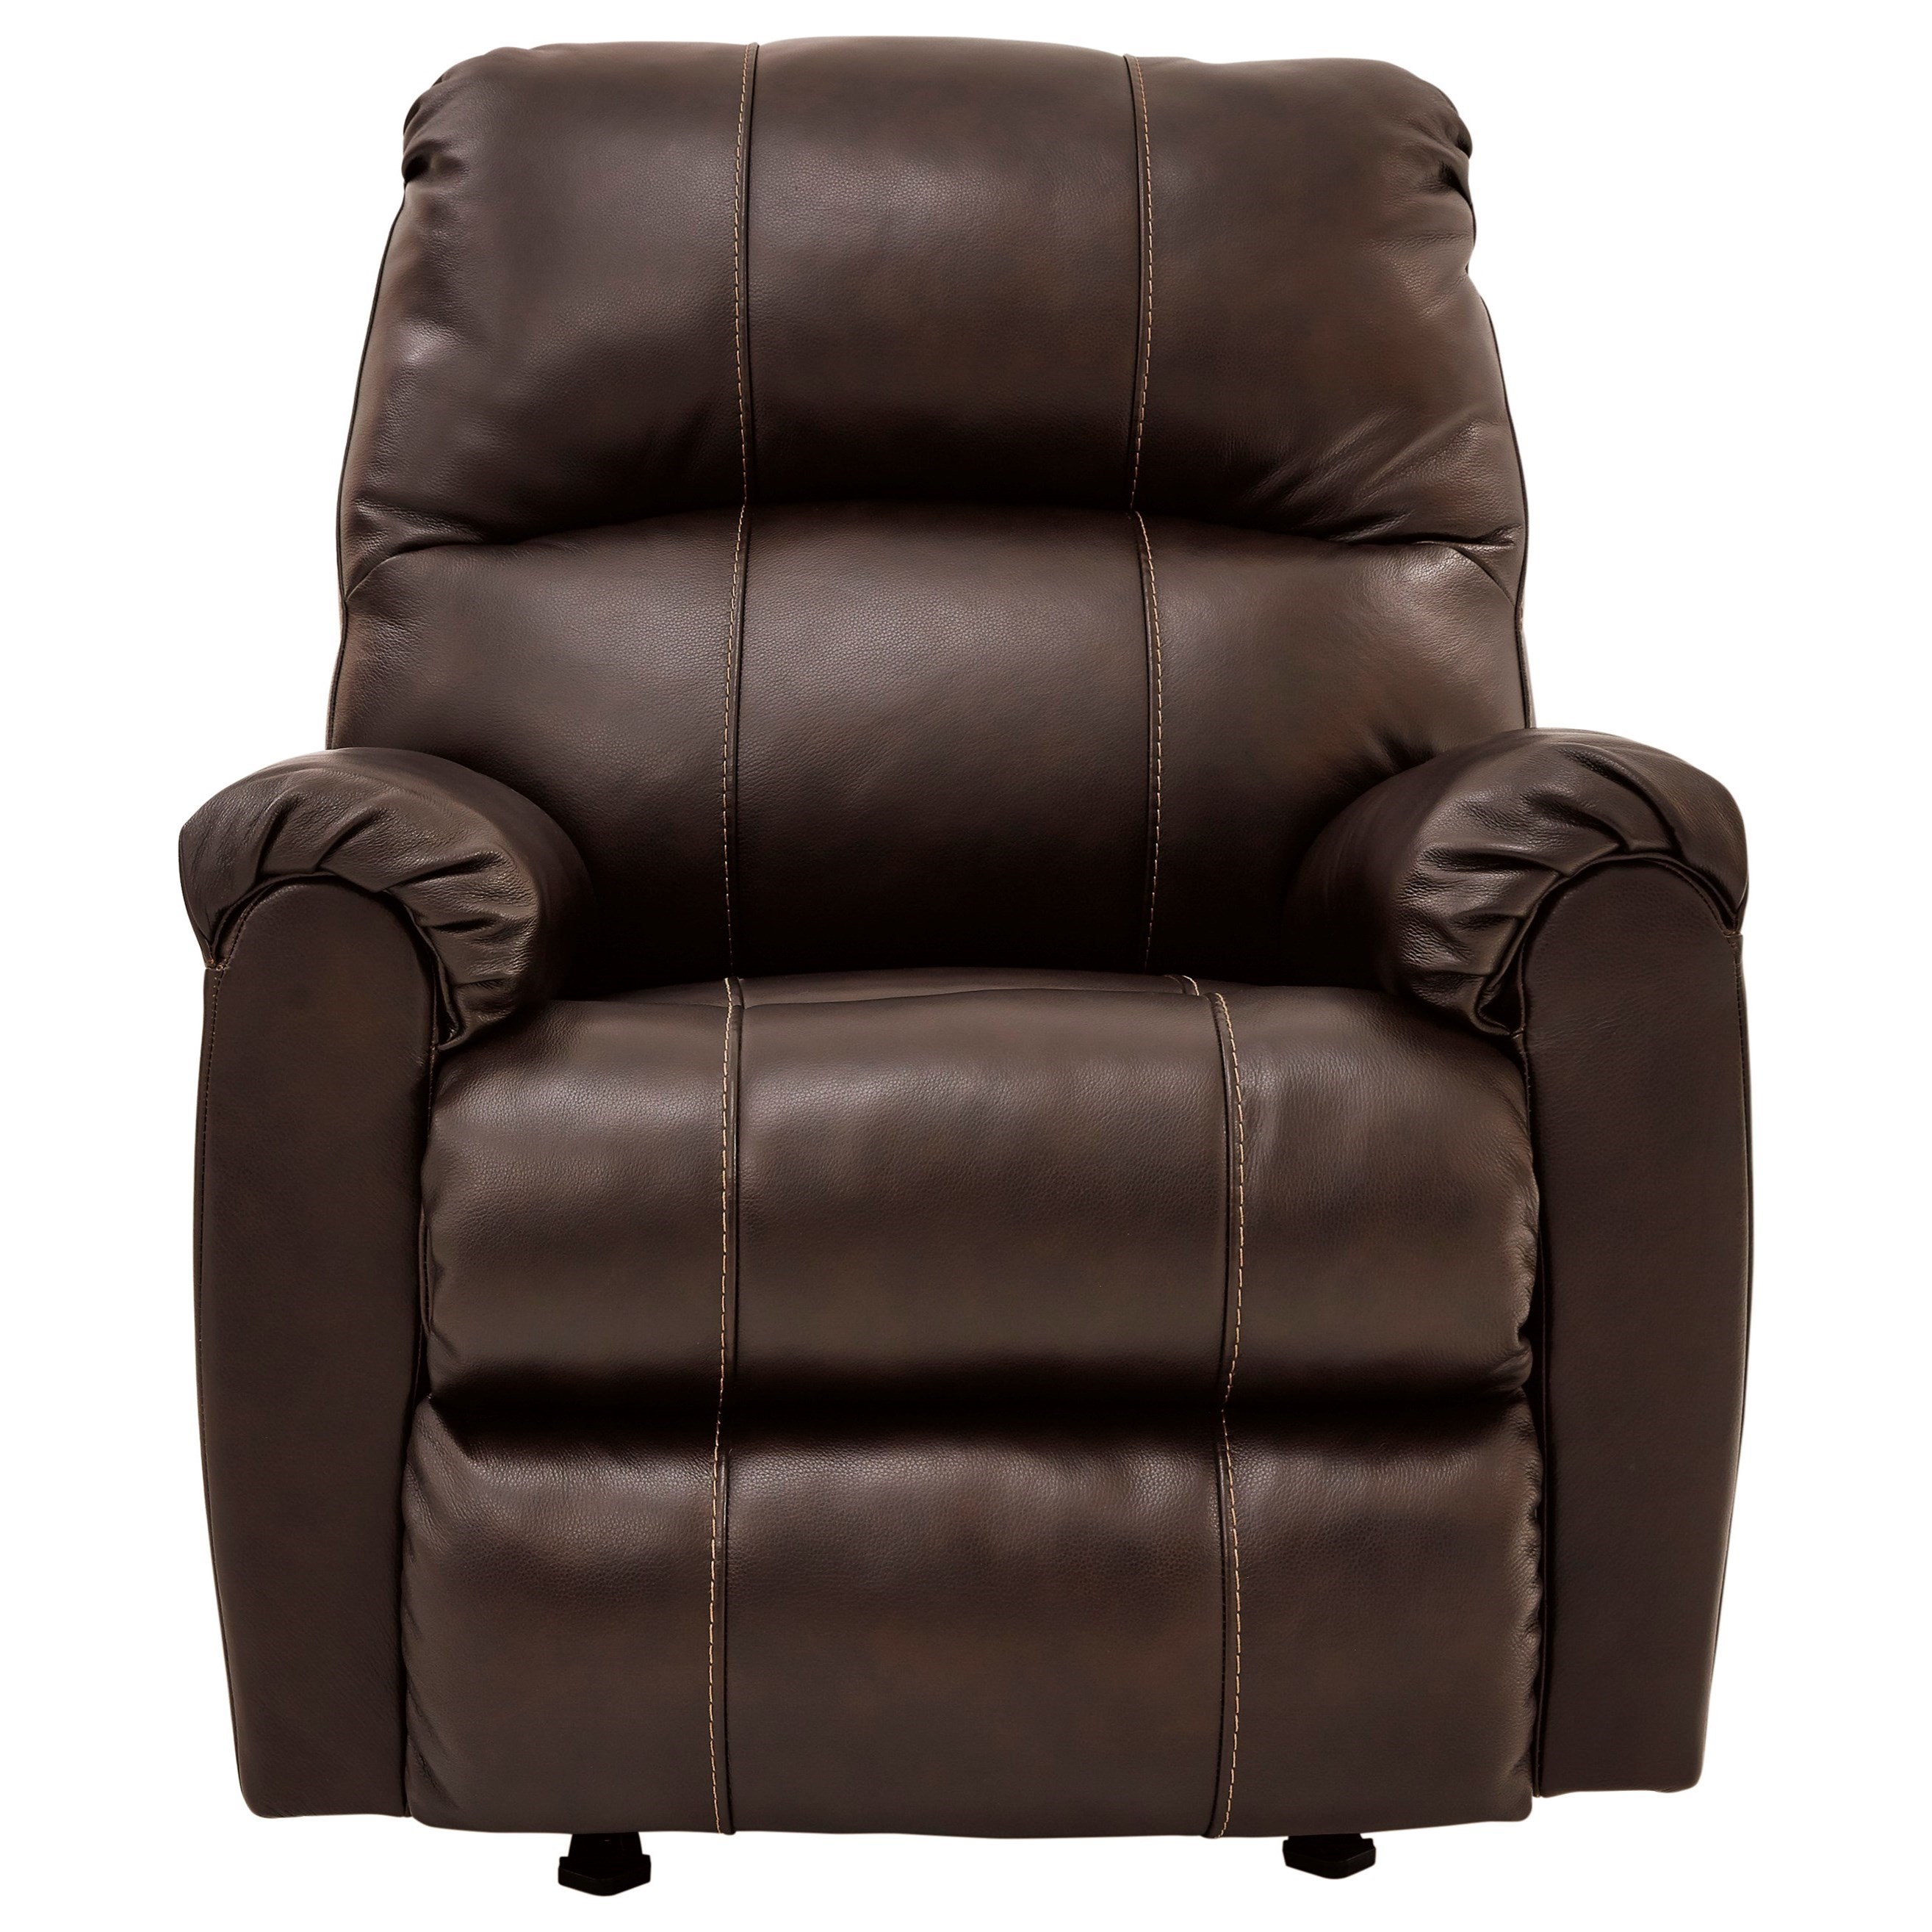 Hermiston Rocker Recliner by Signature Design by Ashley at Northeast Factory Direct